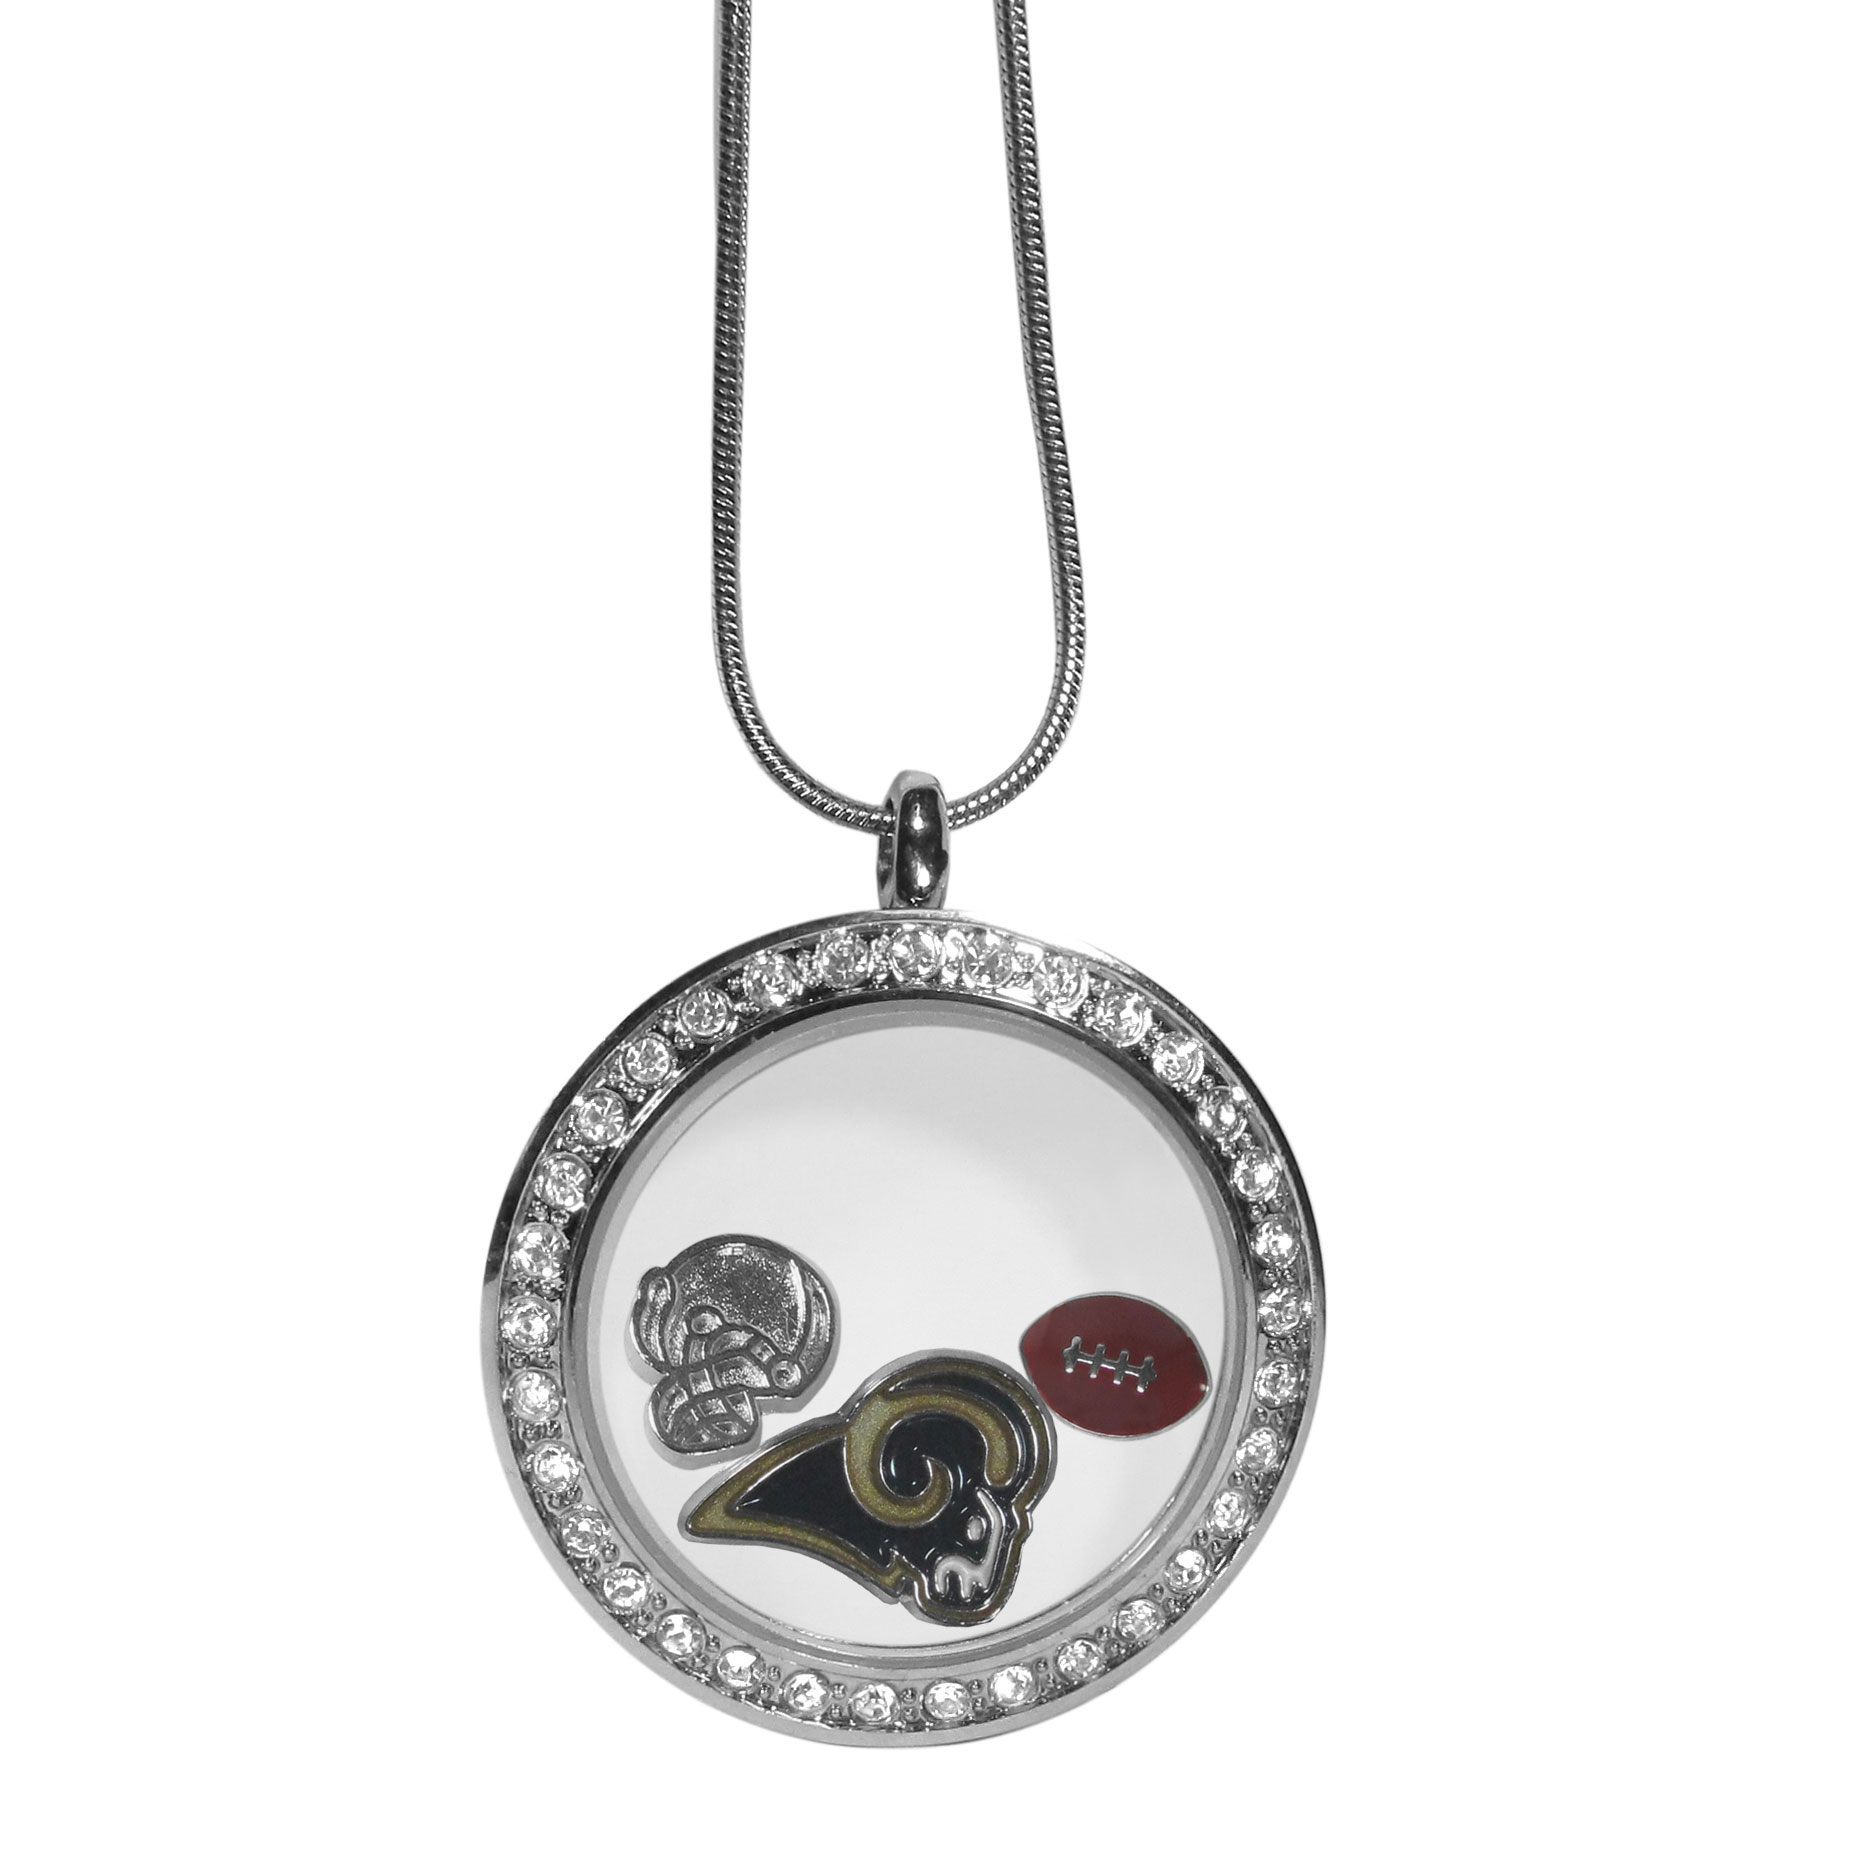 Los Angeles Rams Locket Necklace - We have taken the classic floating charm locket and combined with licensed sports charms to create a must have fan necklace. The necklace comes with 3 charms; 1 Los Angeles Rams charm, one football charm and one helmet charm. The charms float in a beautiful locket that has a strong magnetic closure with a rhinestone border. The locket comes on an 18 inch snake chain with 2 inch extender.